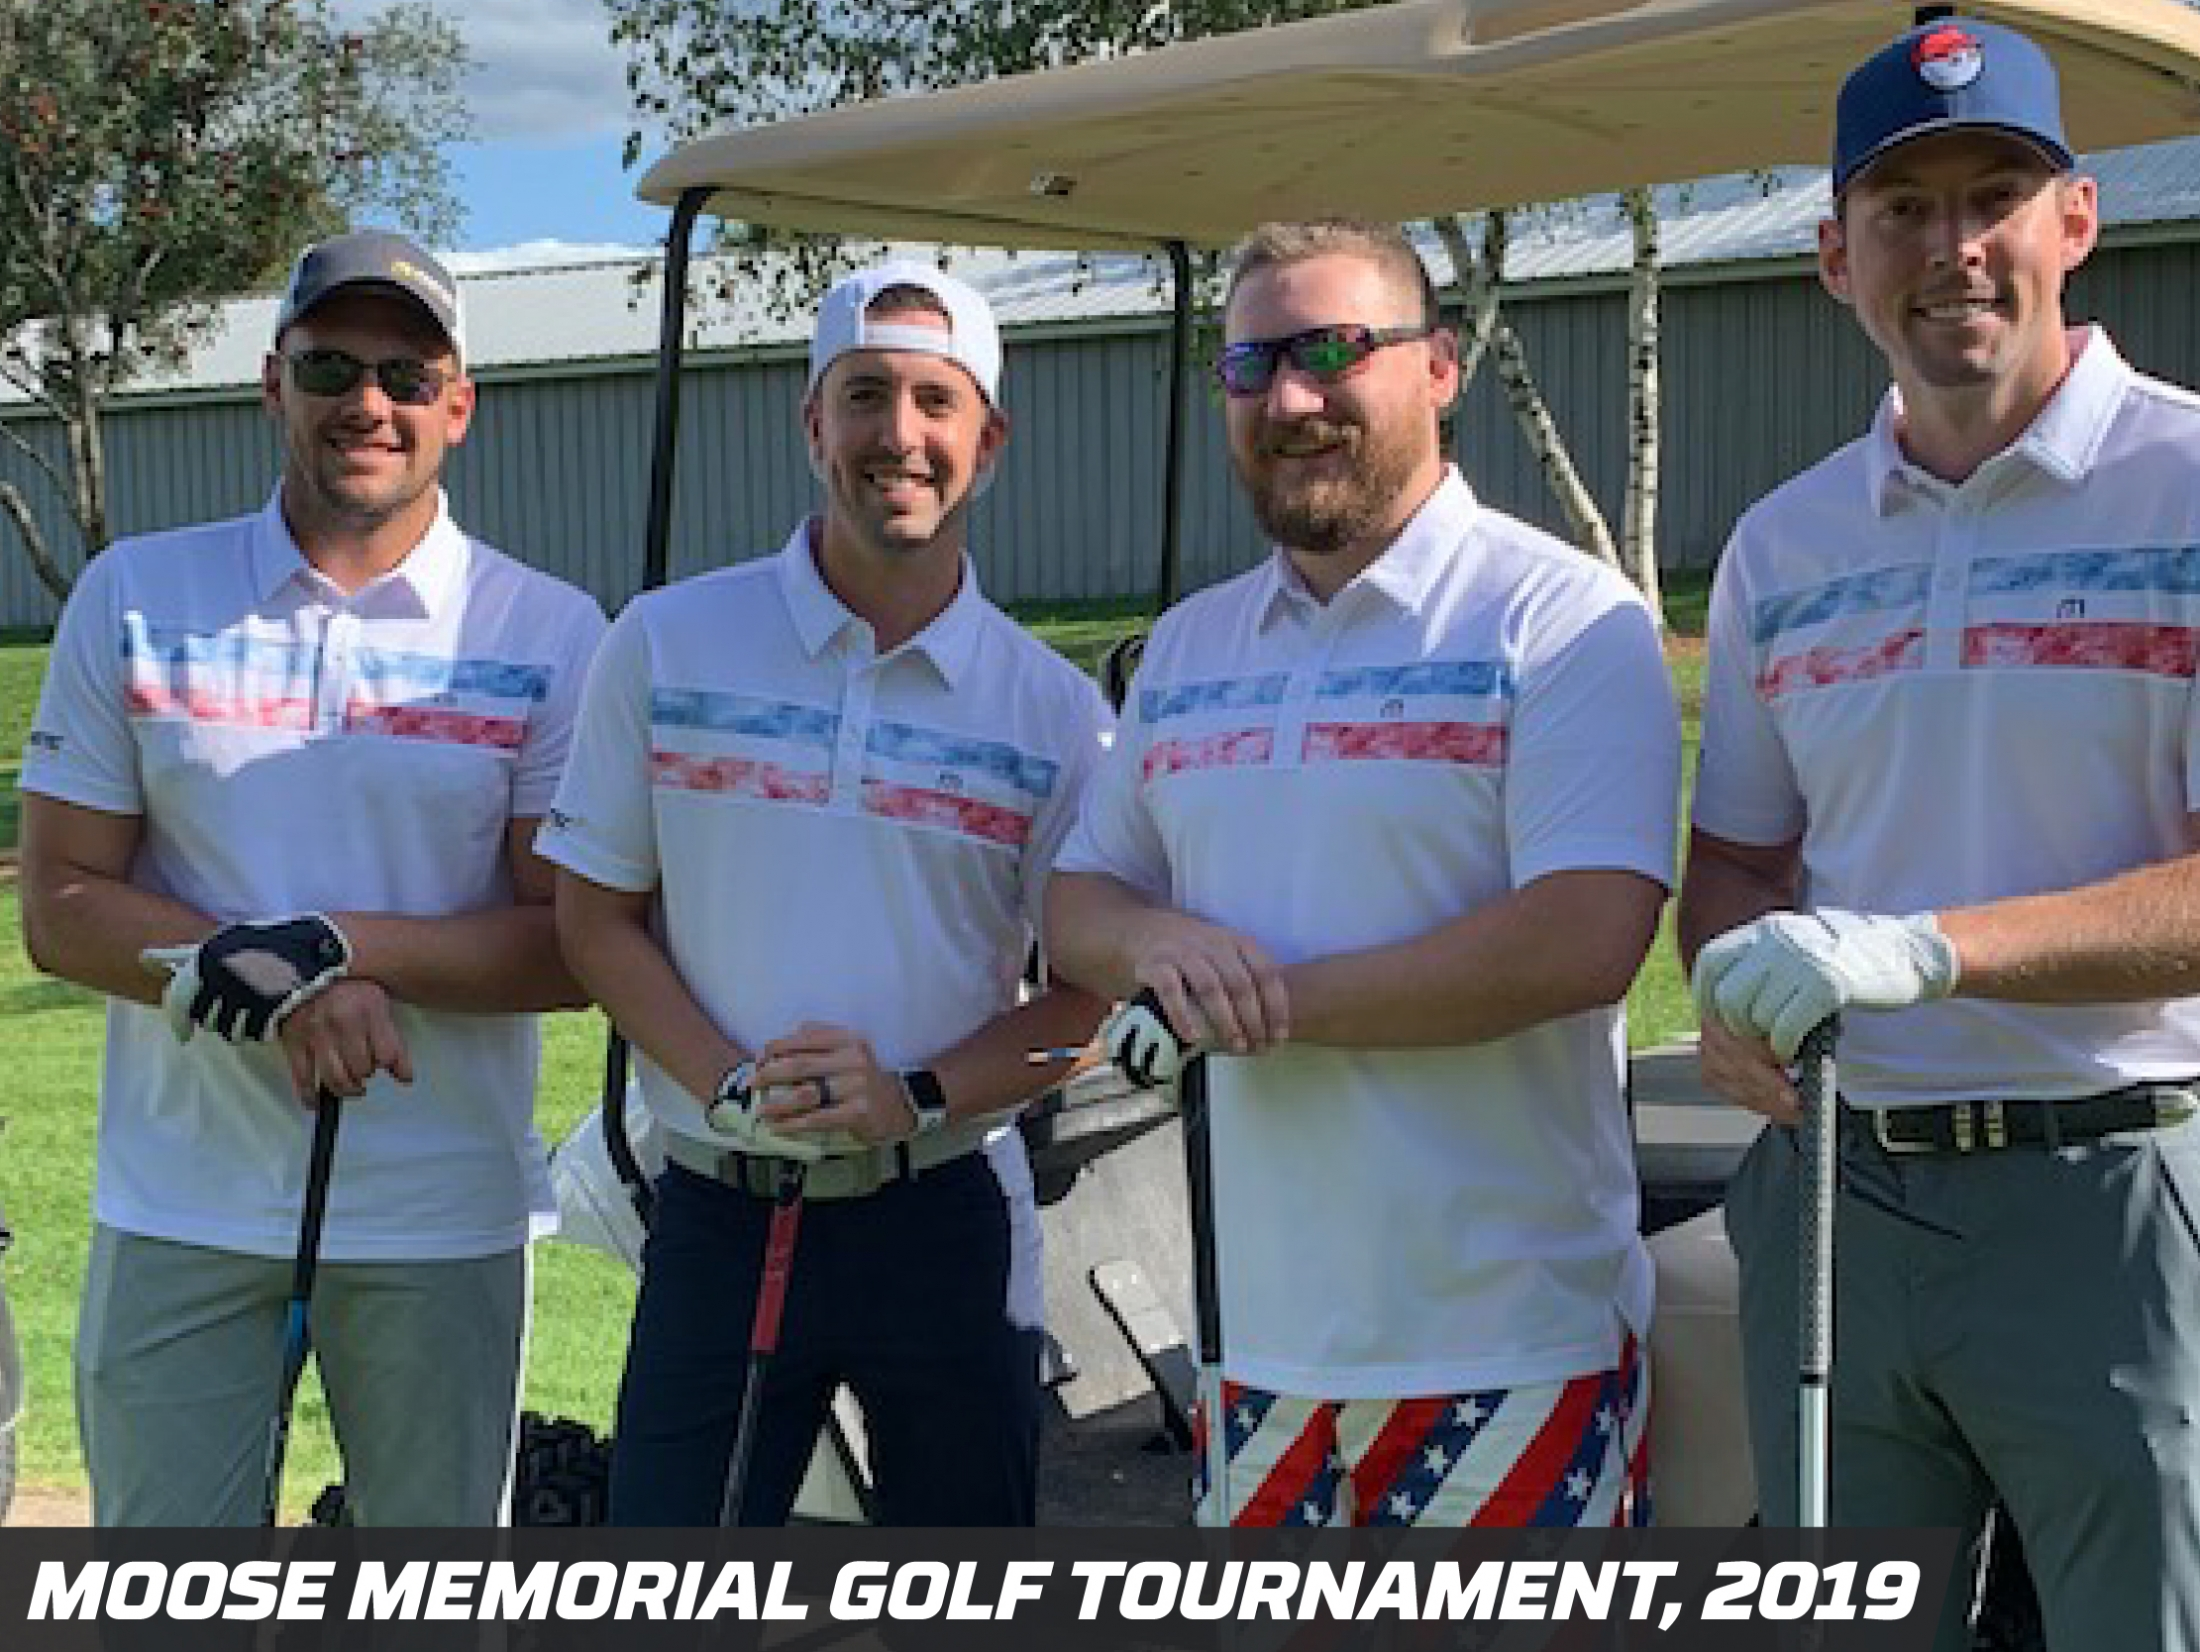 Precision Pipeline Community Involvement: Moose Memorial Golf Tournament 2019